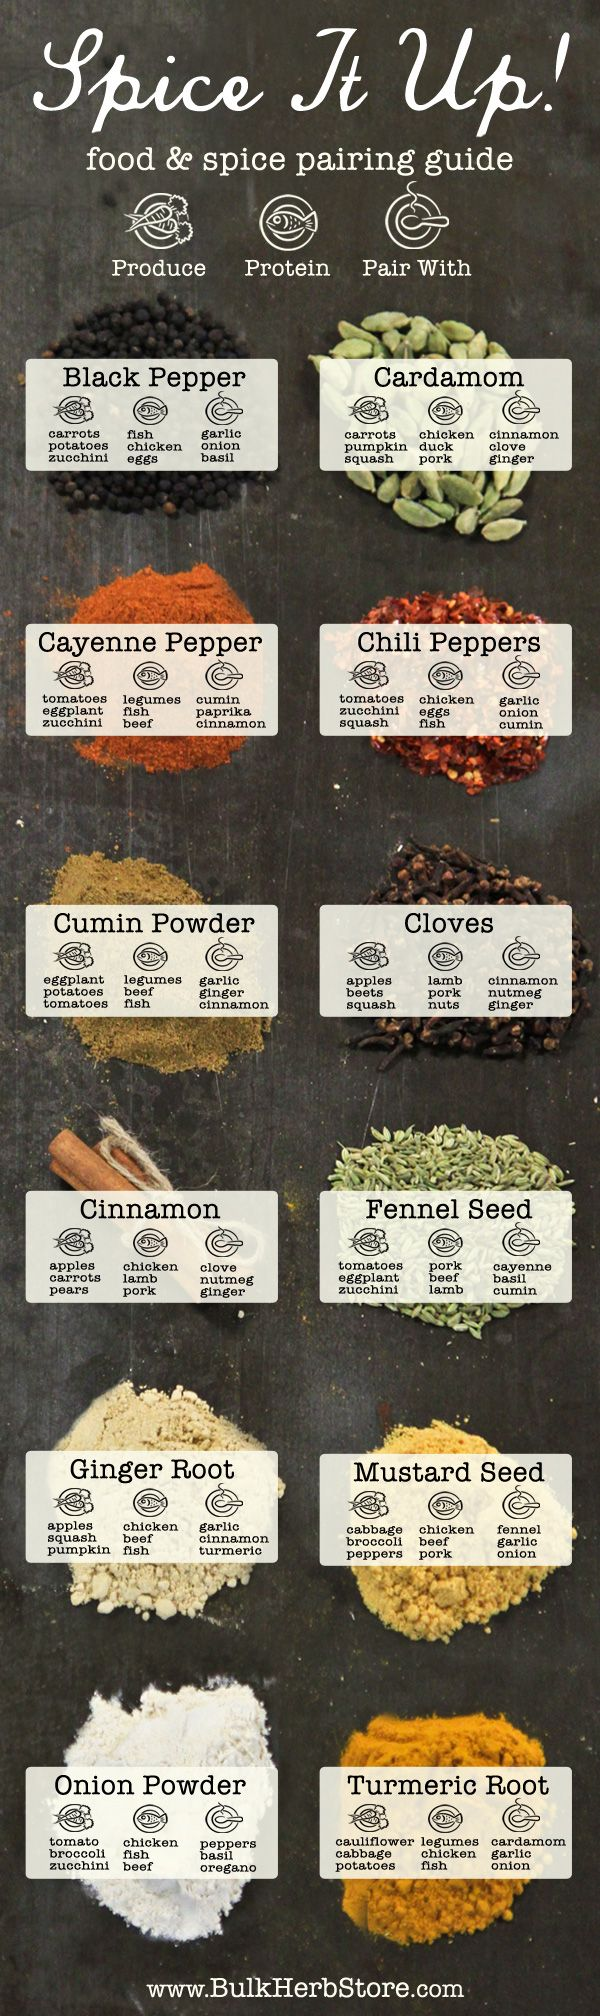 Spice It Up with our food & spice pairing guide.  Take your cooking to the next level!